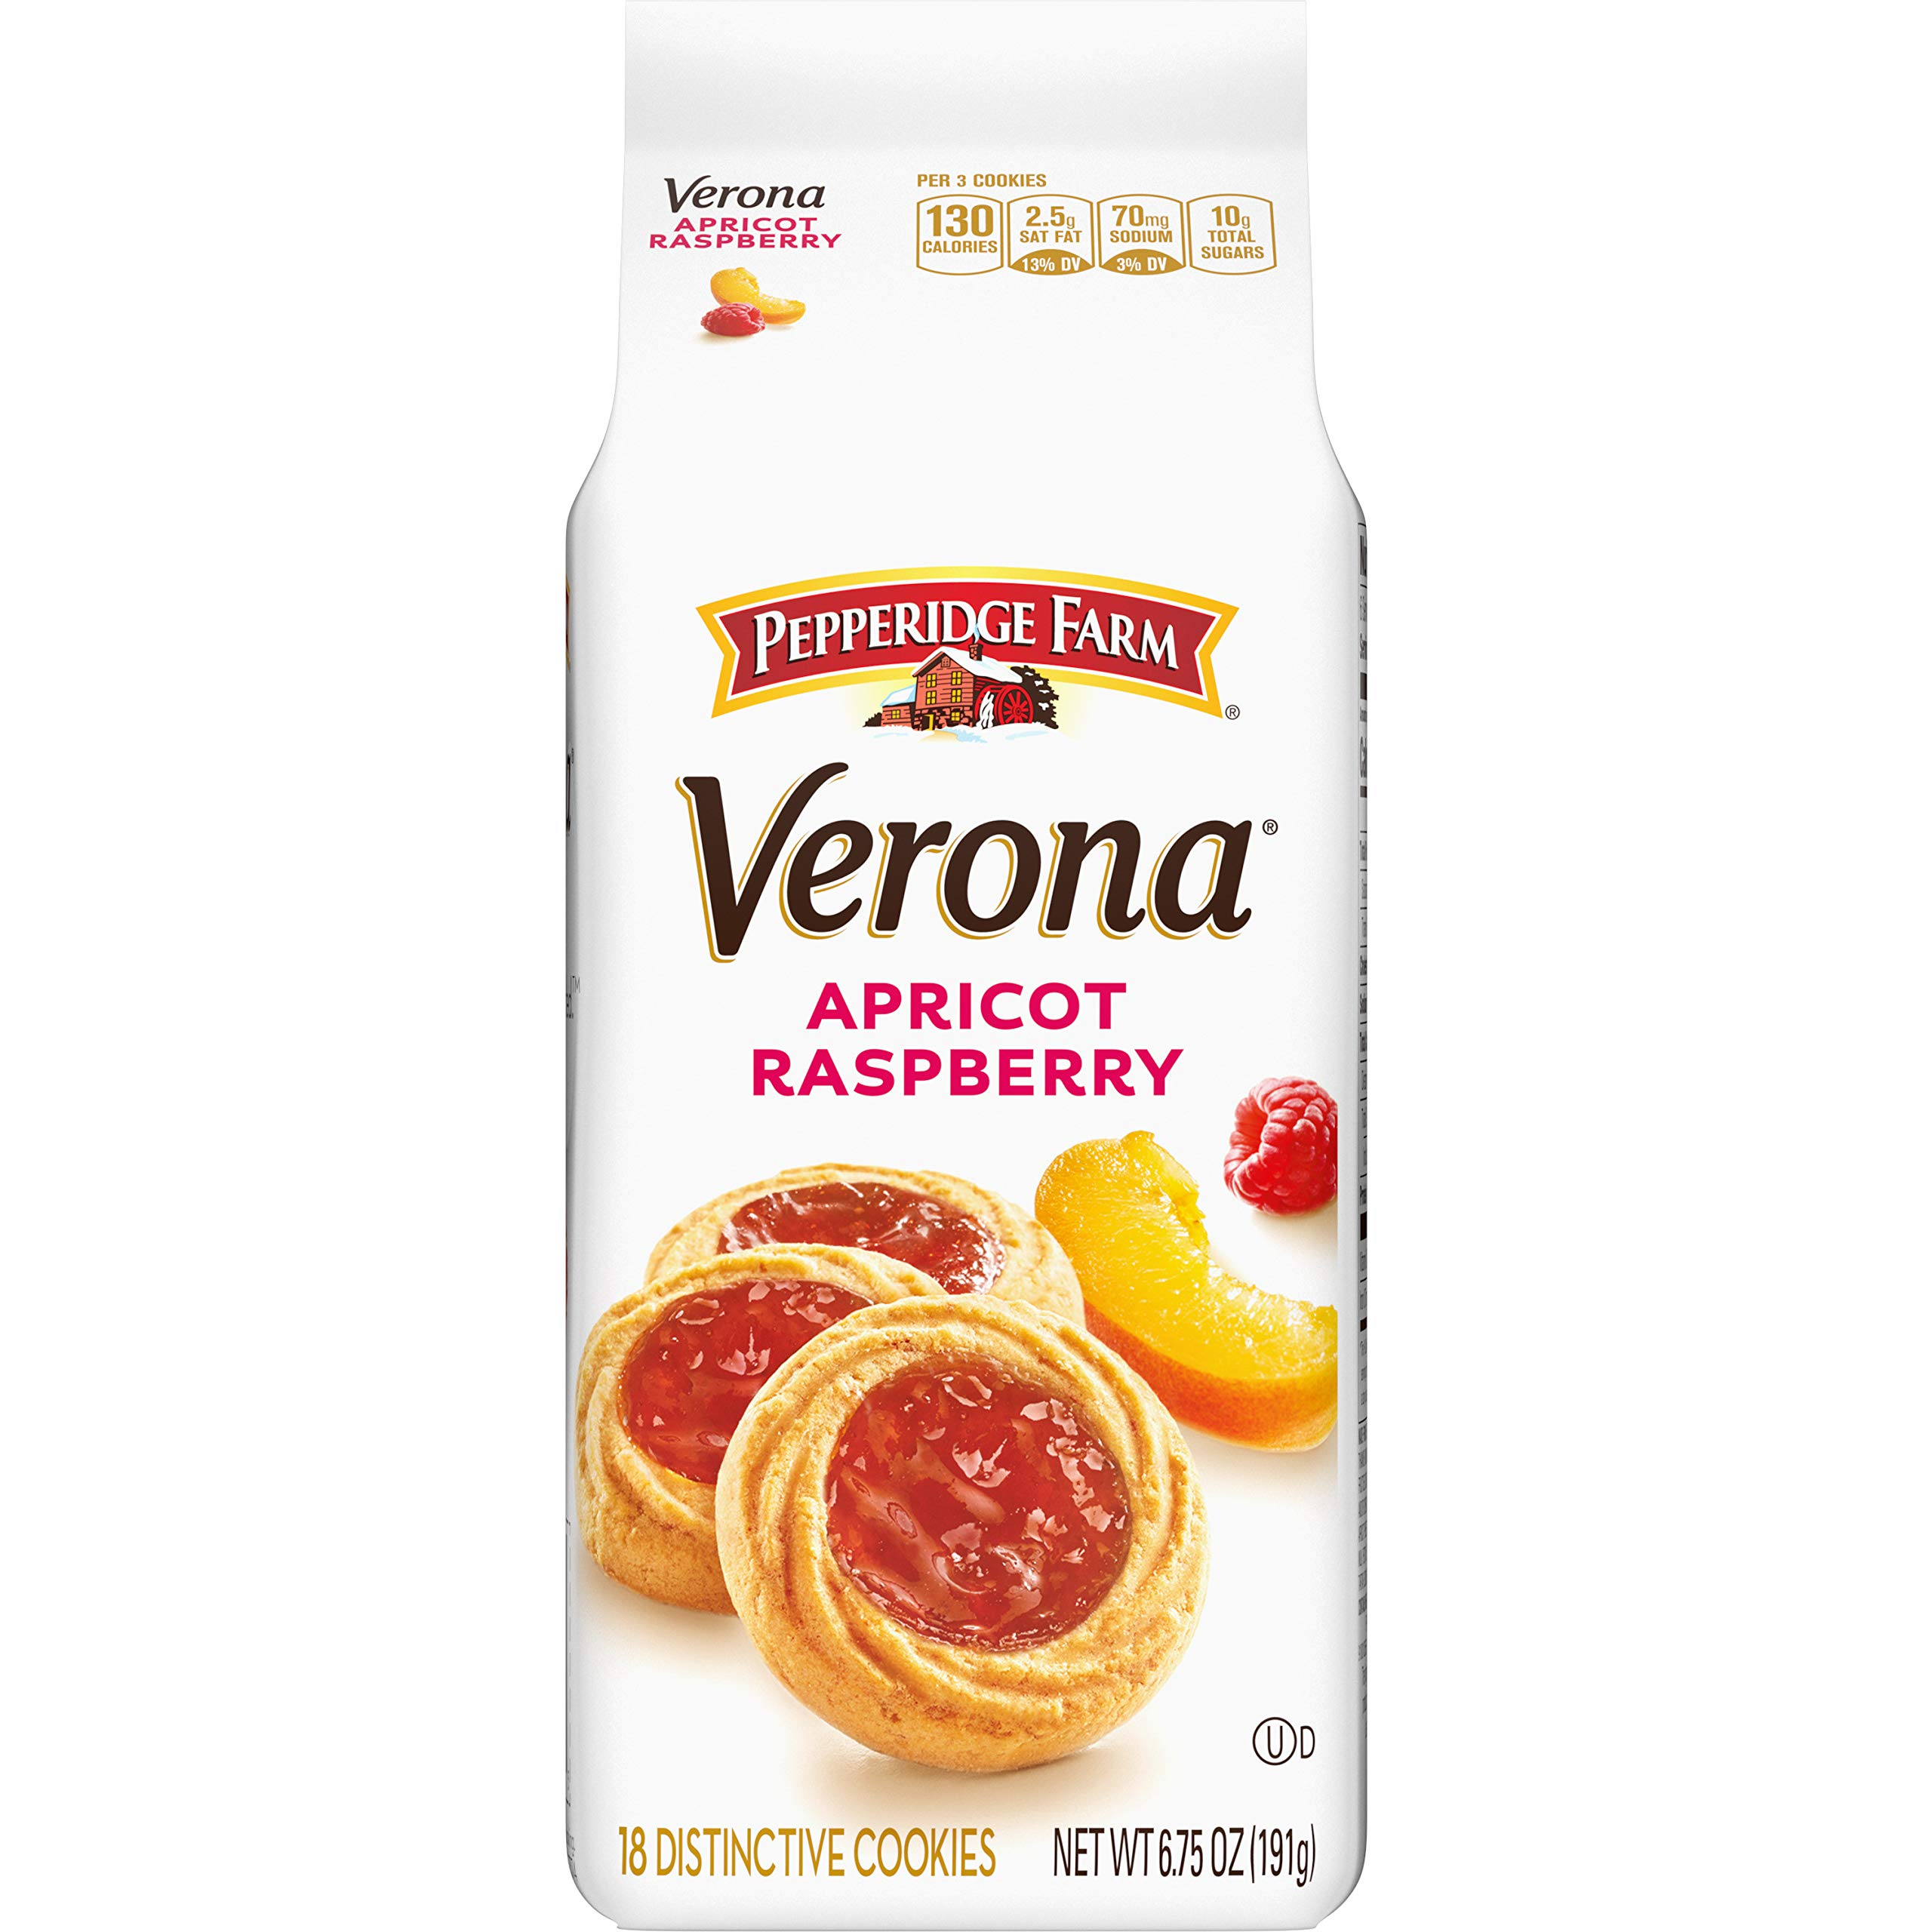 Pepperidge Farm Verona Apricot Raspberry Thumbprint Cookies, 6.75 oz. Bag